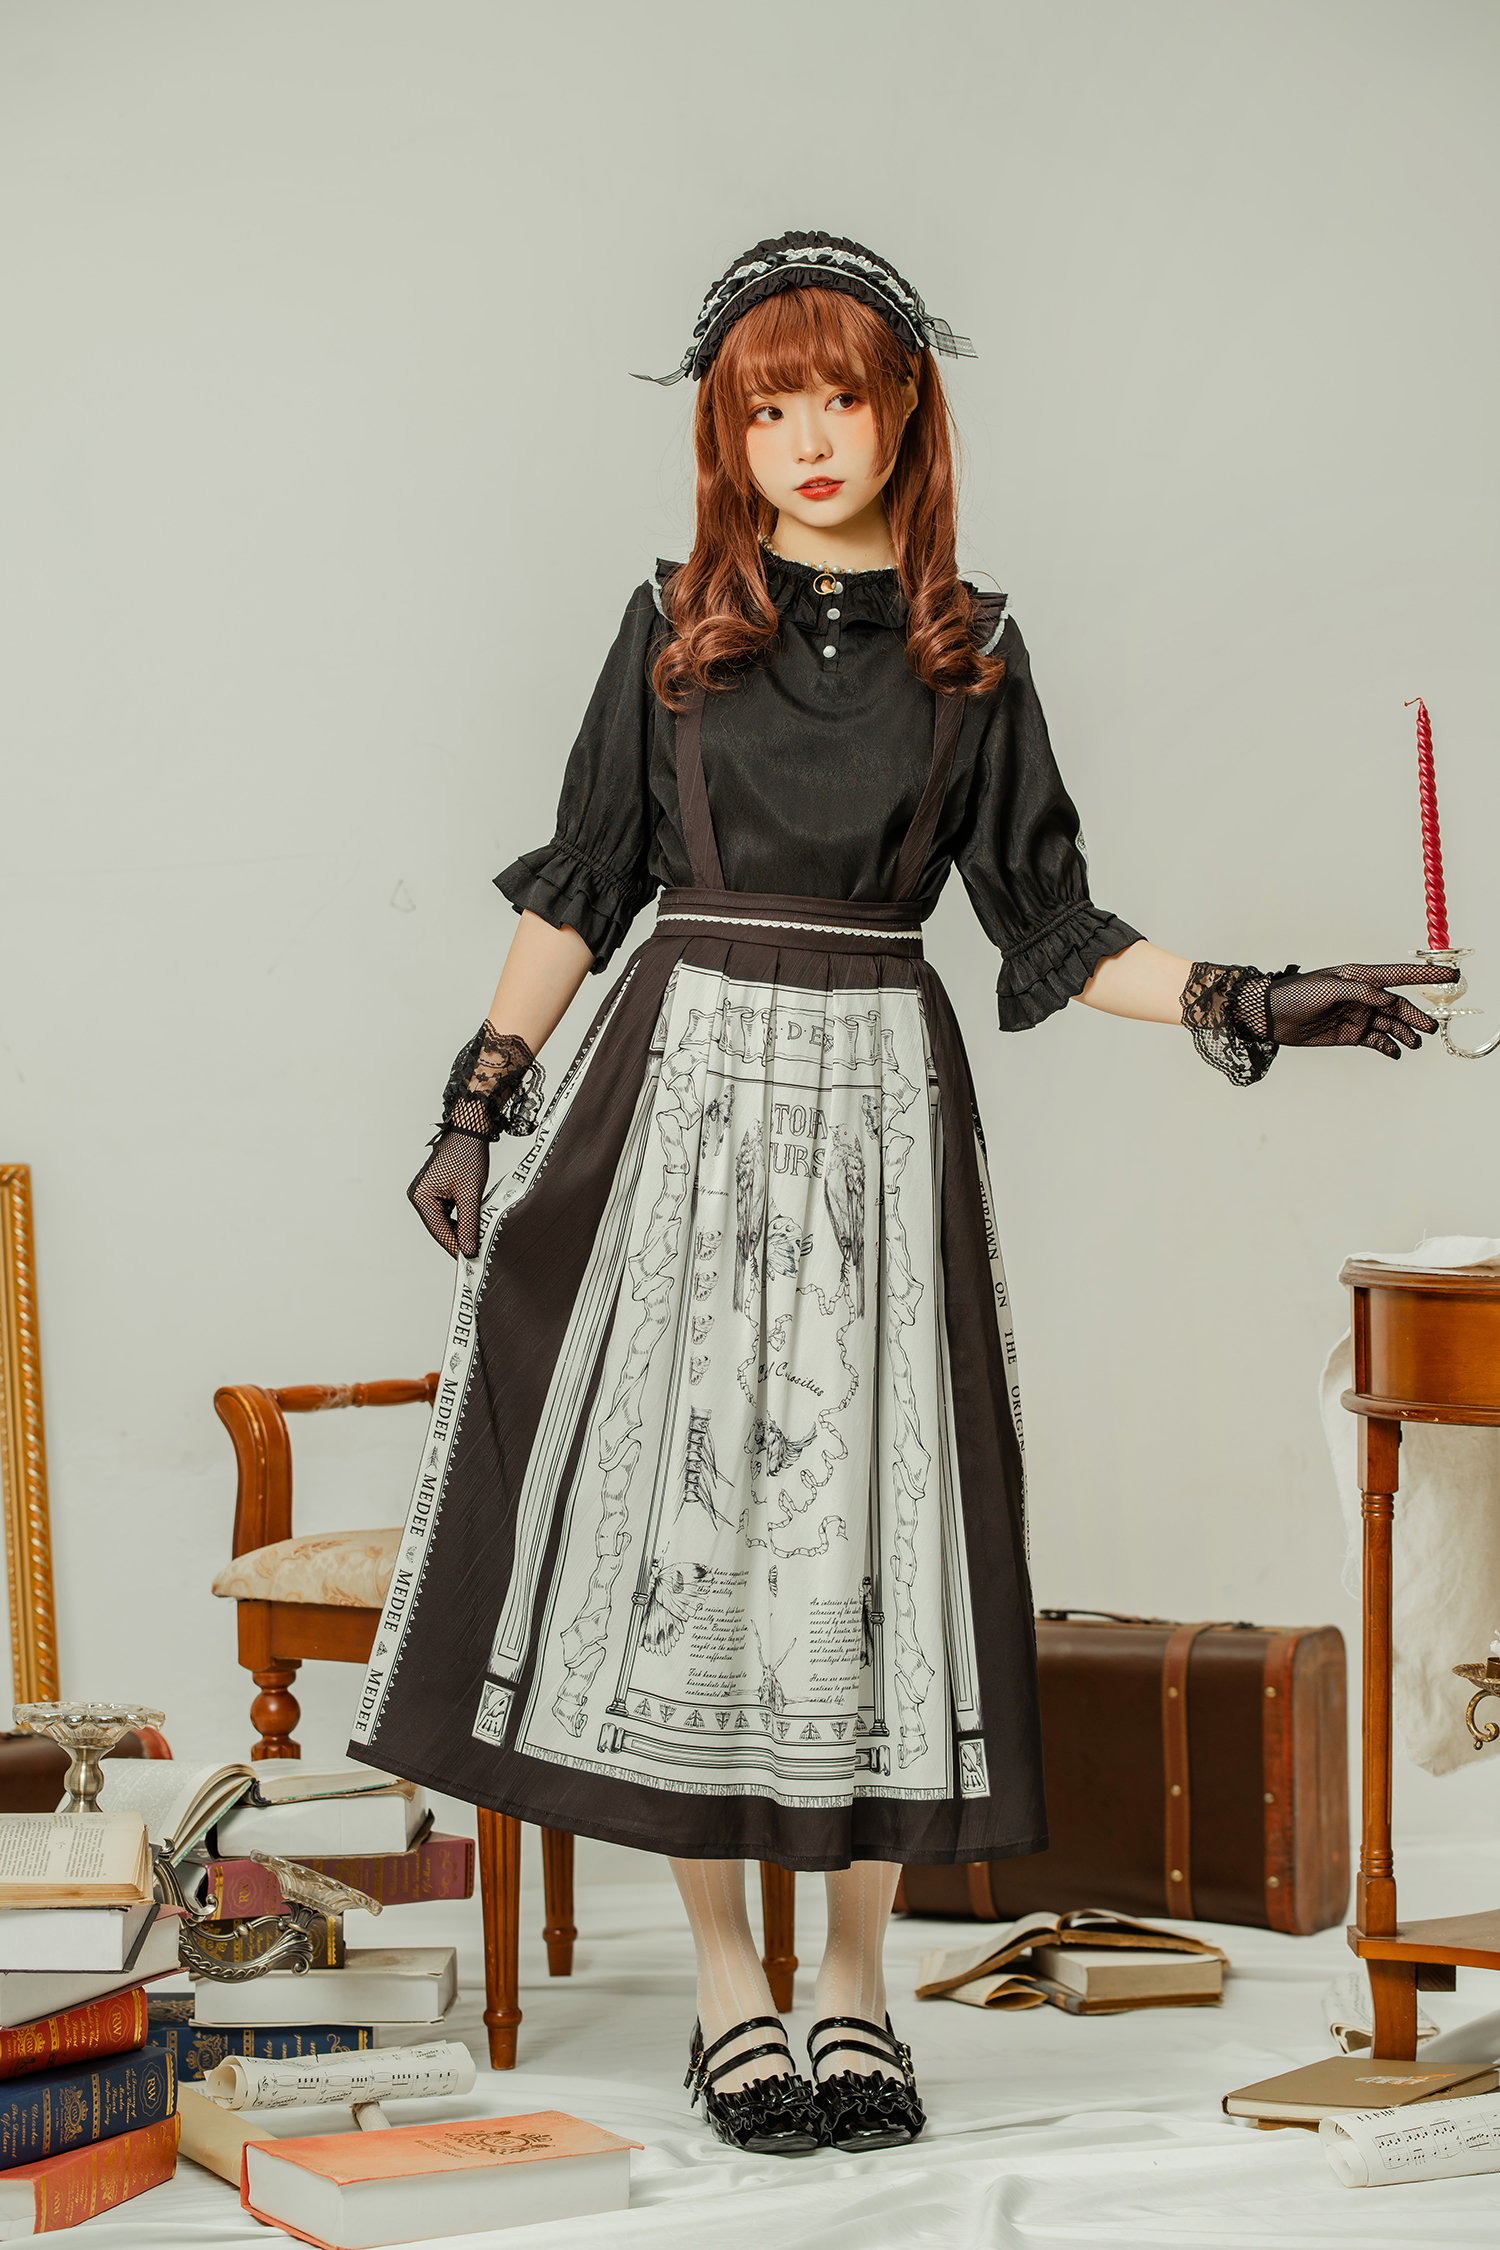 Stock medee original design Lolita spring and summer daily collection notes 3 type jsk skirt